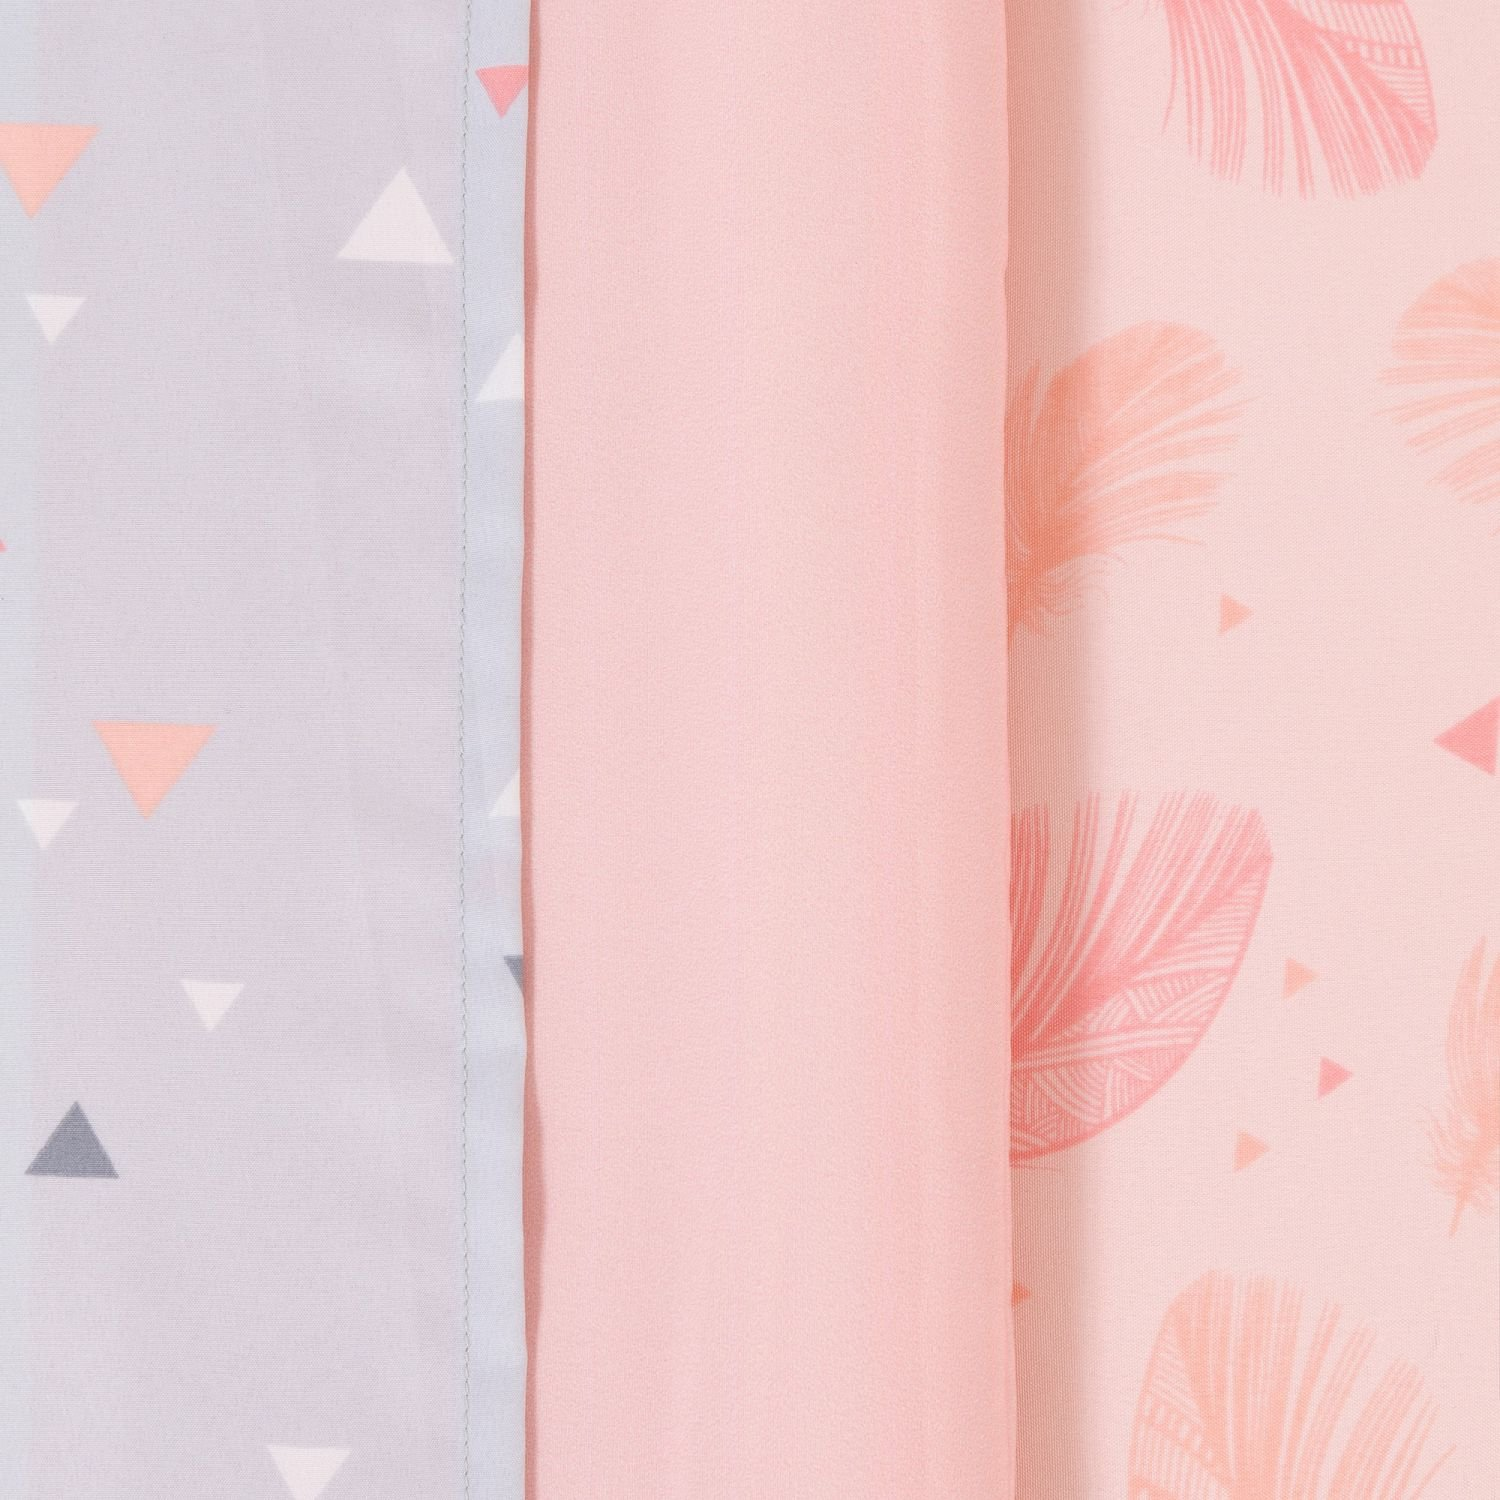 South Shore Doudou The Rabbit 3-Piece Baby Crib Bed Set and Pillow, Pink by South Shore (Image #2)